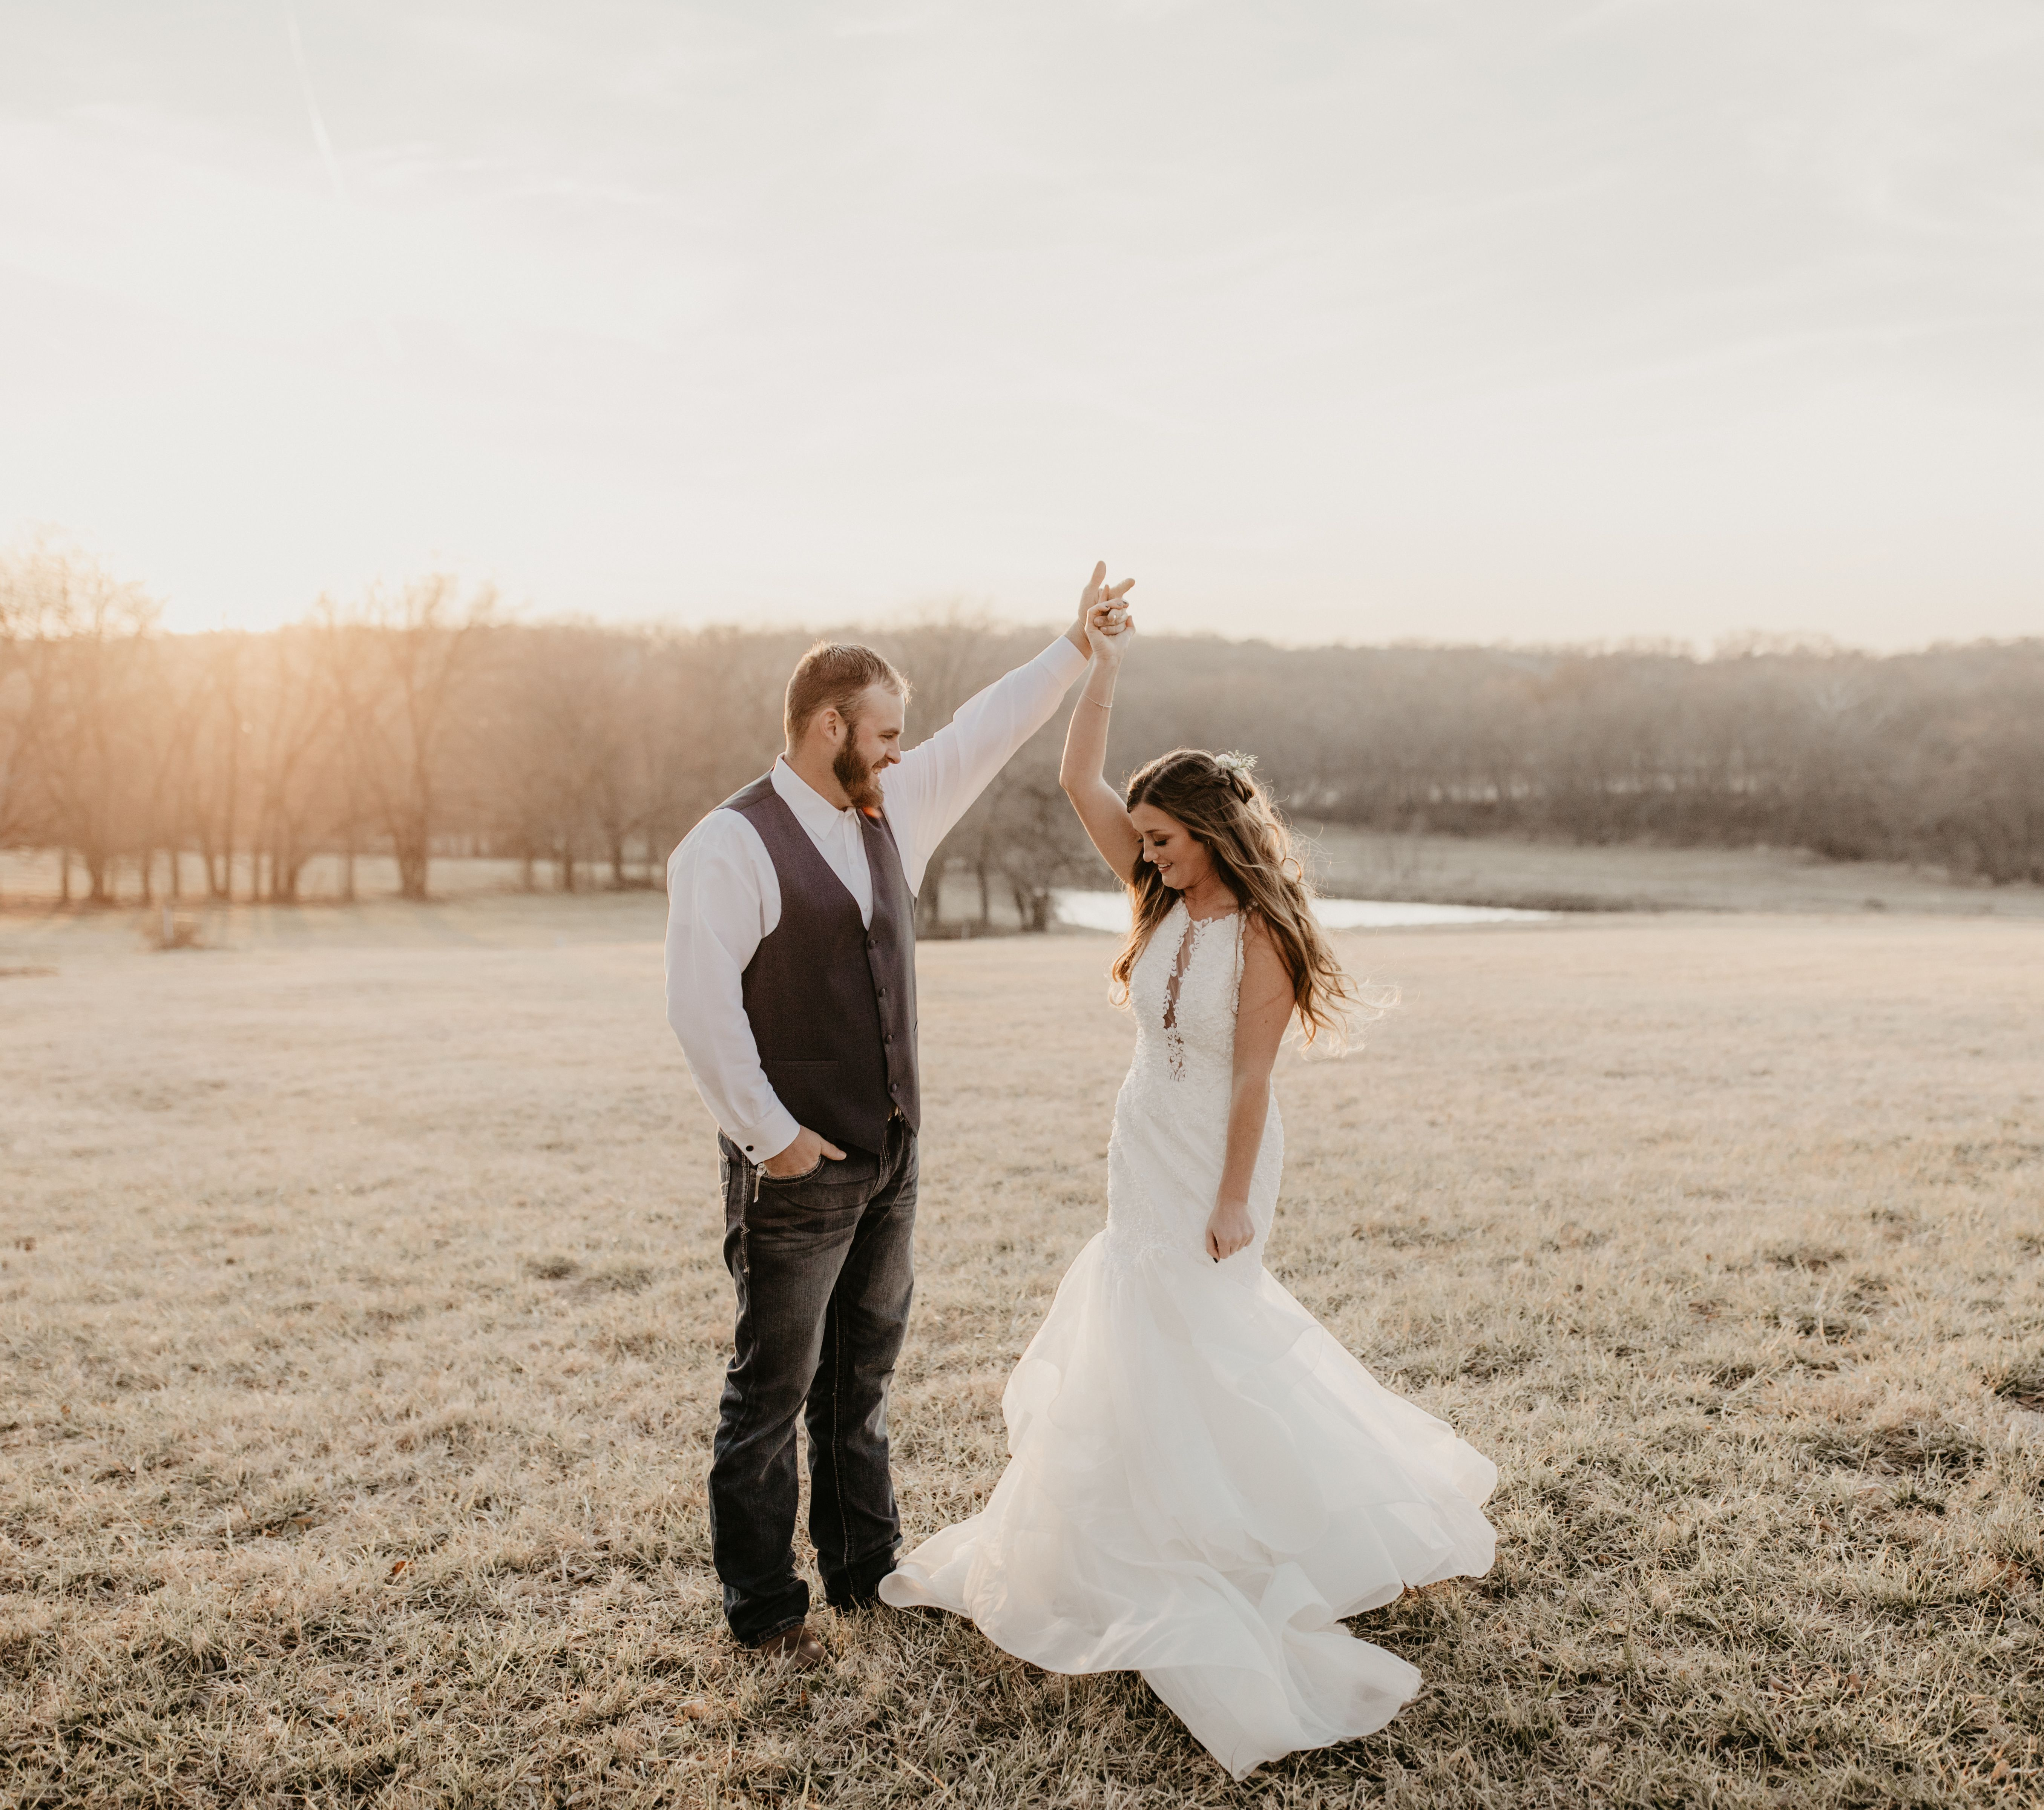 Cute Wedding Pictures Of Bride And Groom